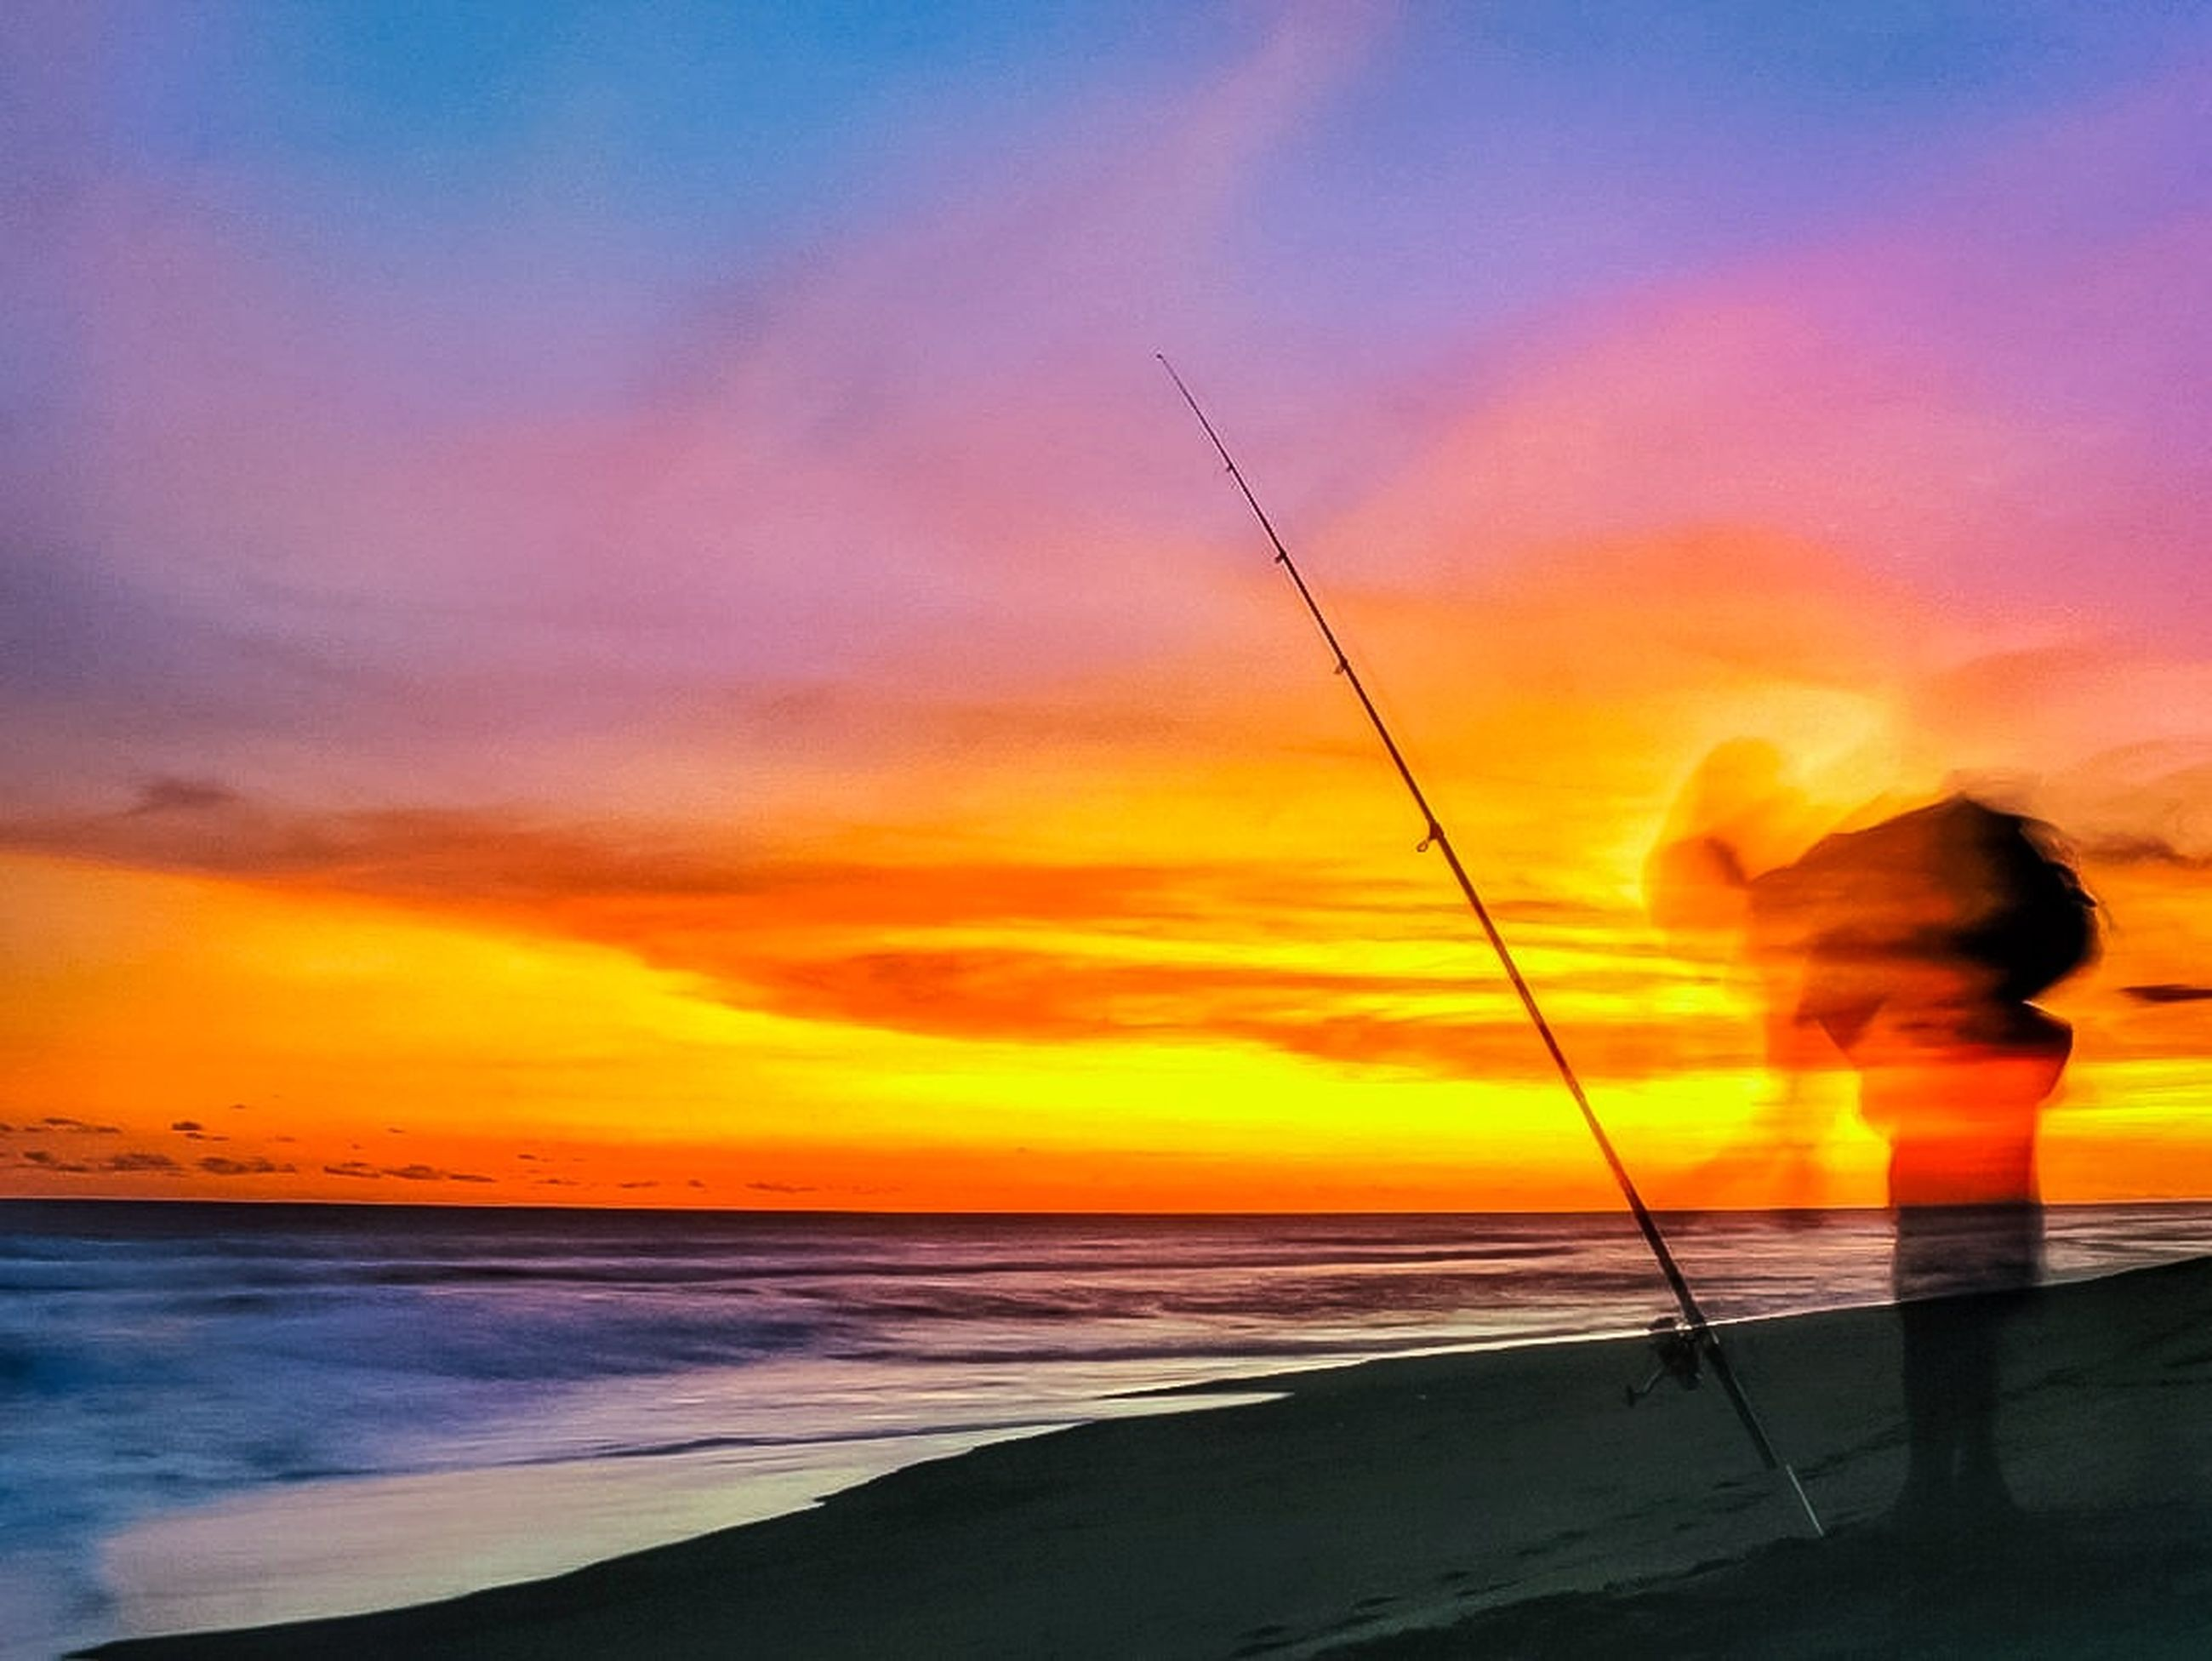 sky, sunset, water, sea, beauty in nature, cloud - sky, scenics - nature, fishing rod, beach, rod, real people, orange color, horizon over water, fishing, silhouette, horizon, land, motion, nature, outdoors